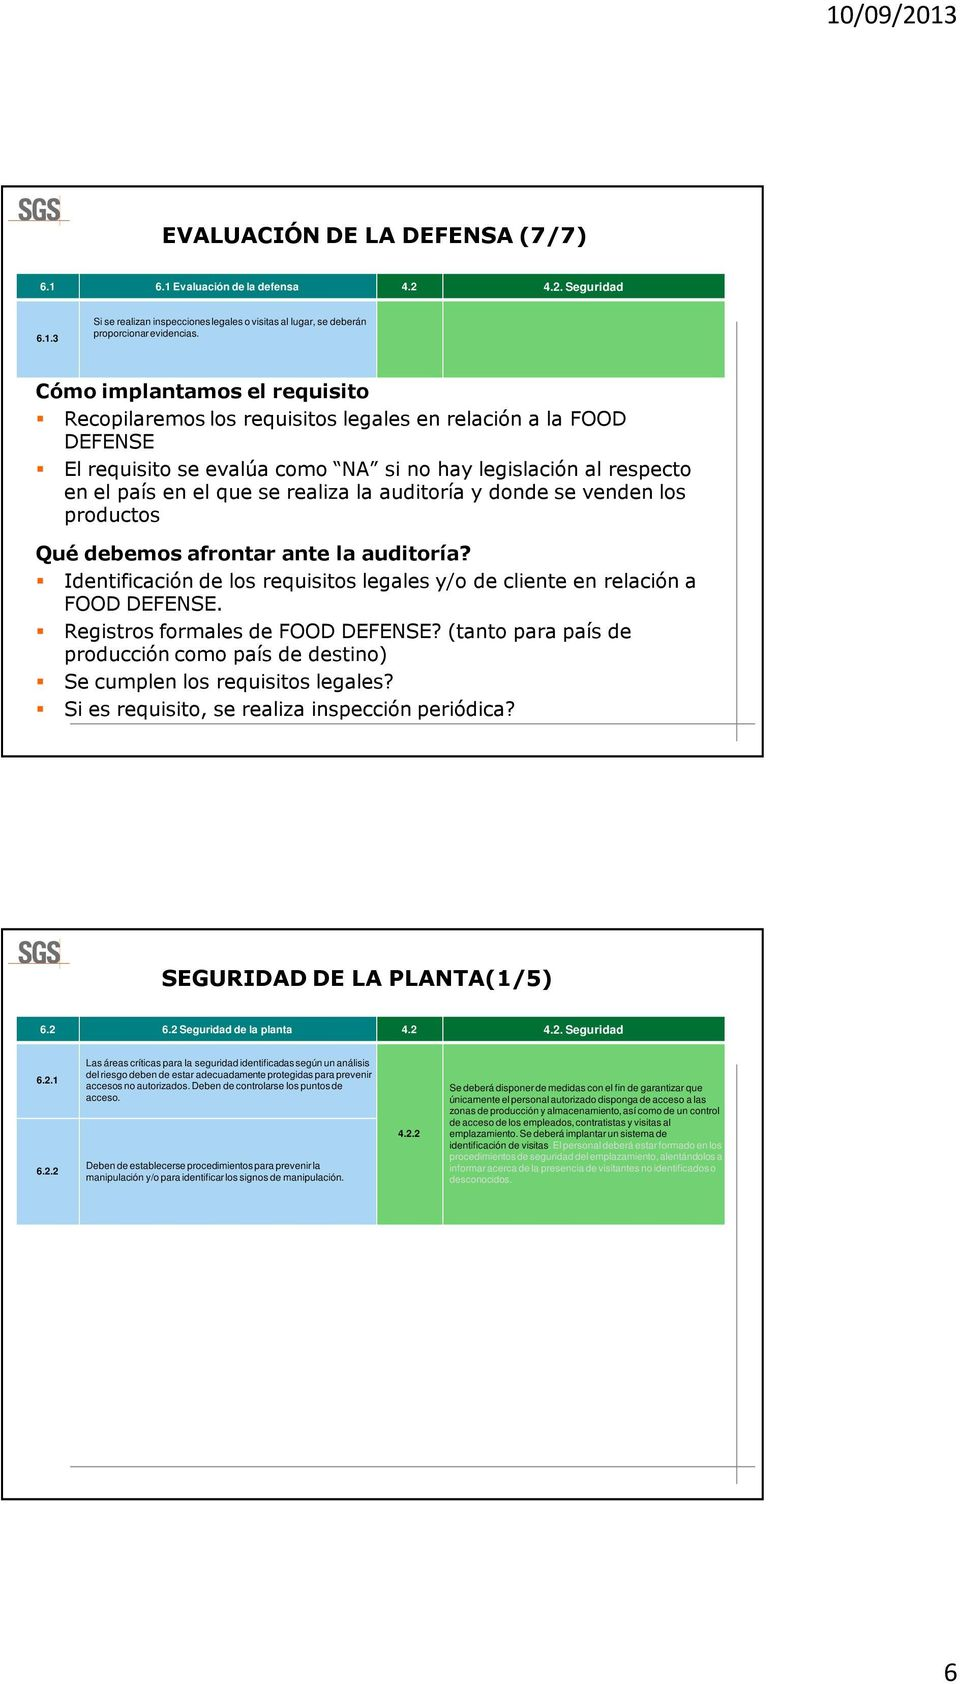 productos Identificación de los requisitos legales y/o de cliente en relación a FOOD DEFENSE. Registros formales de FOOD DEFENSE?